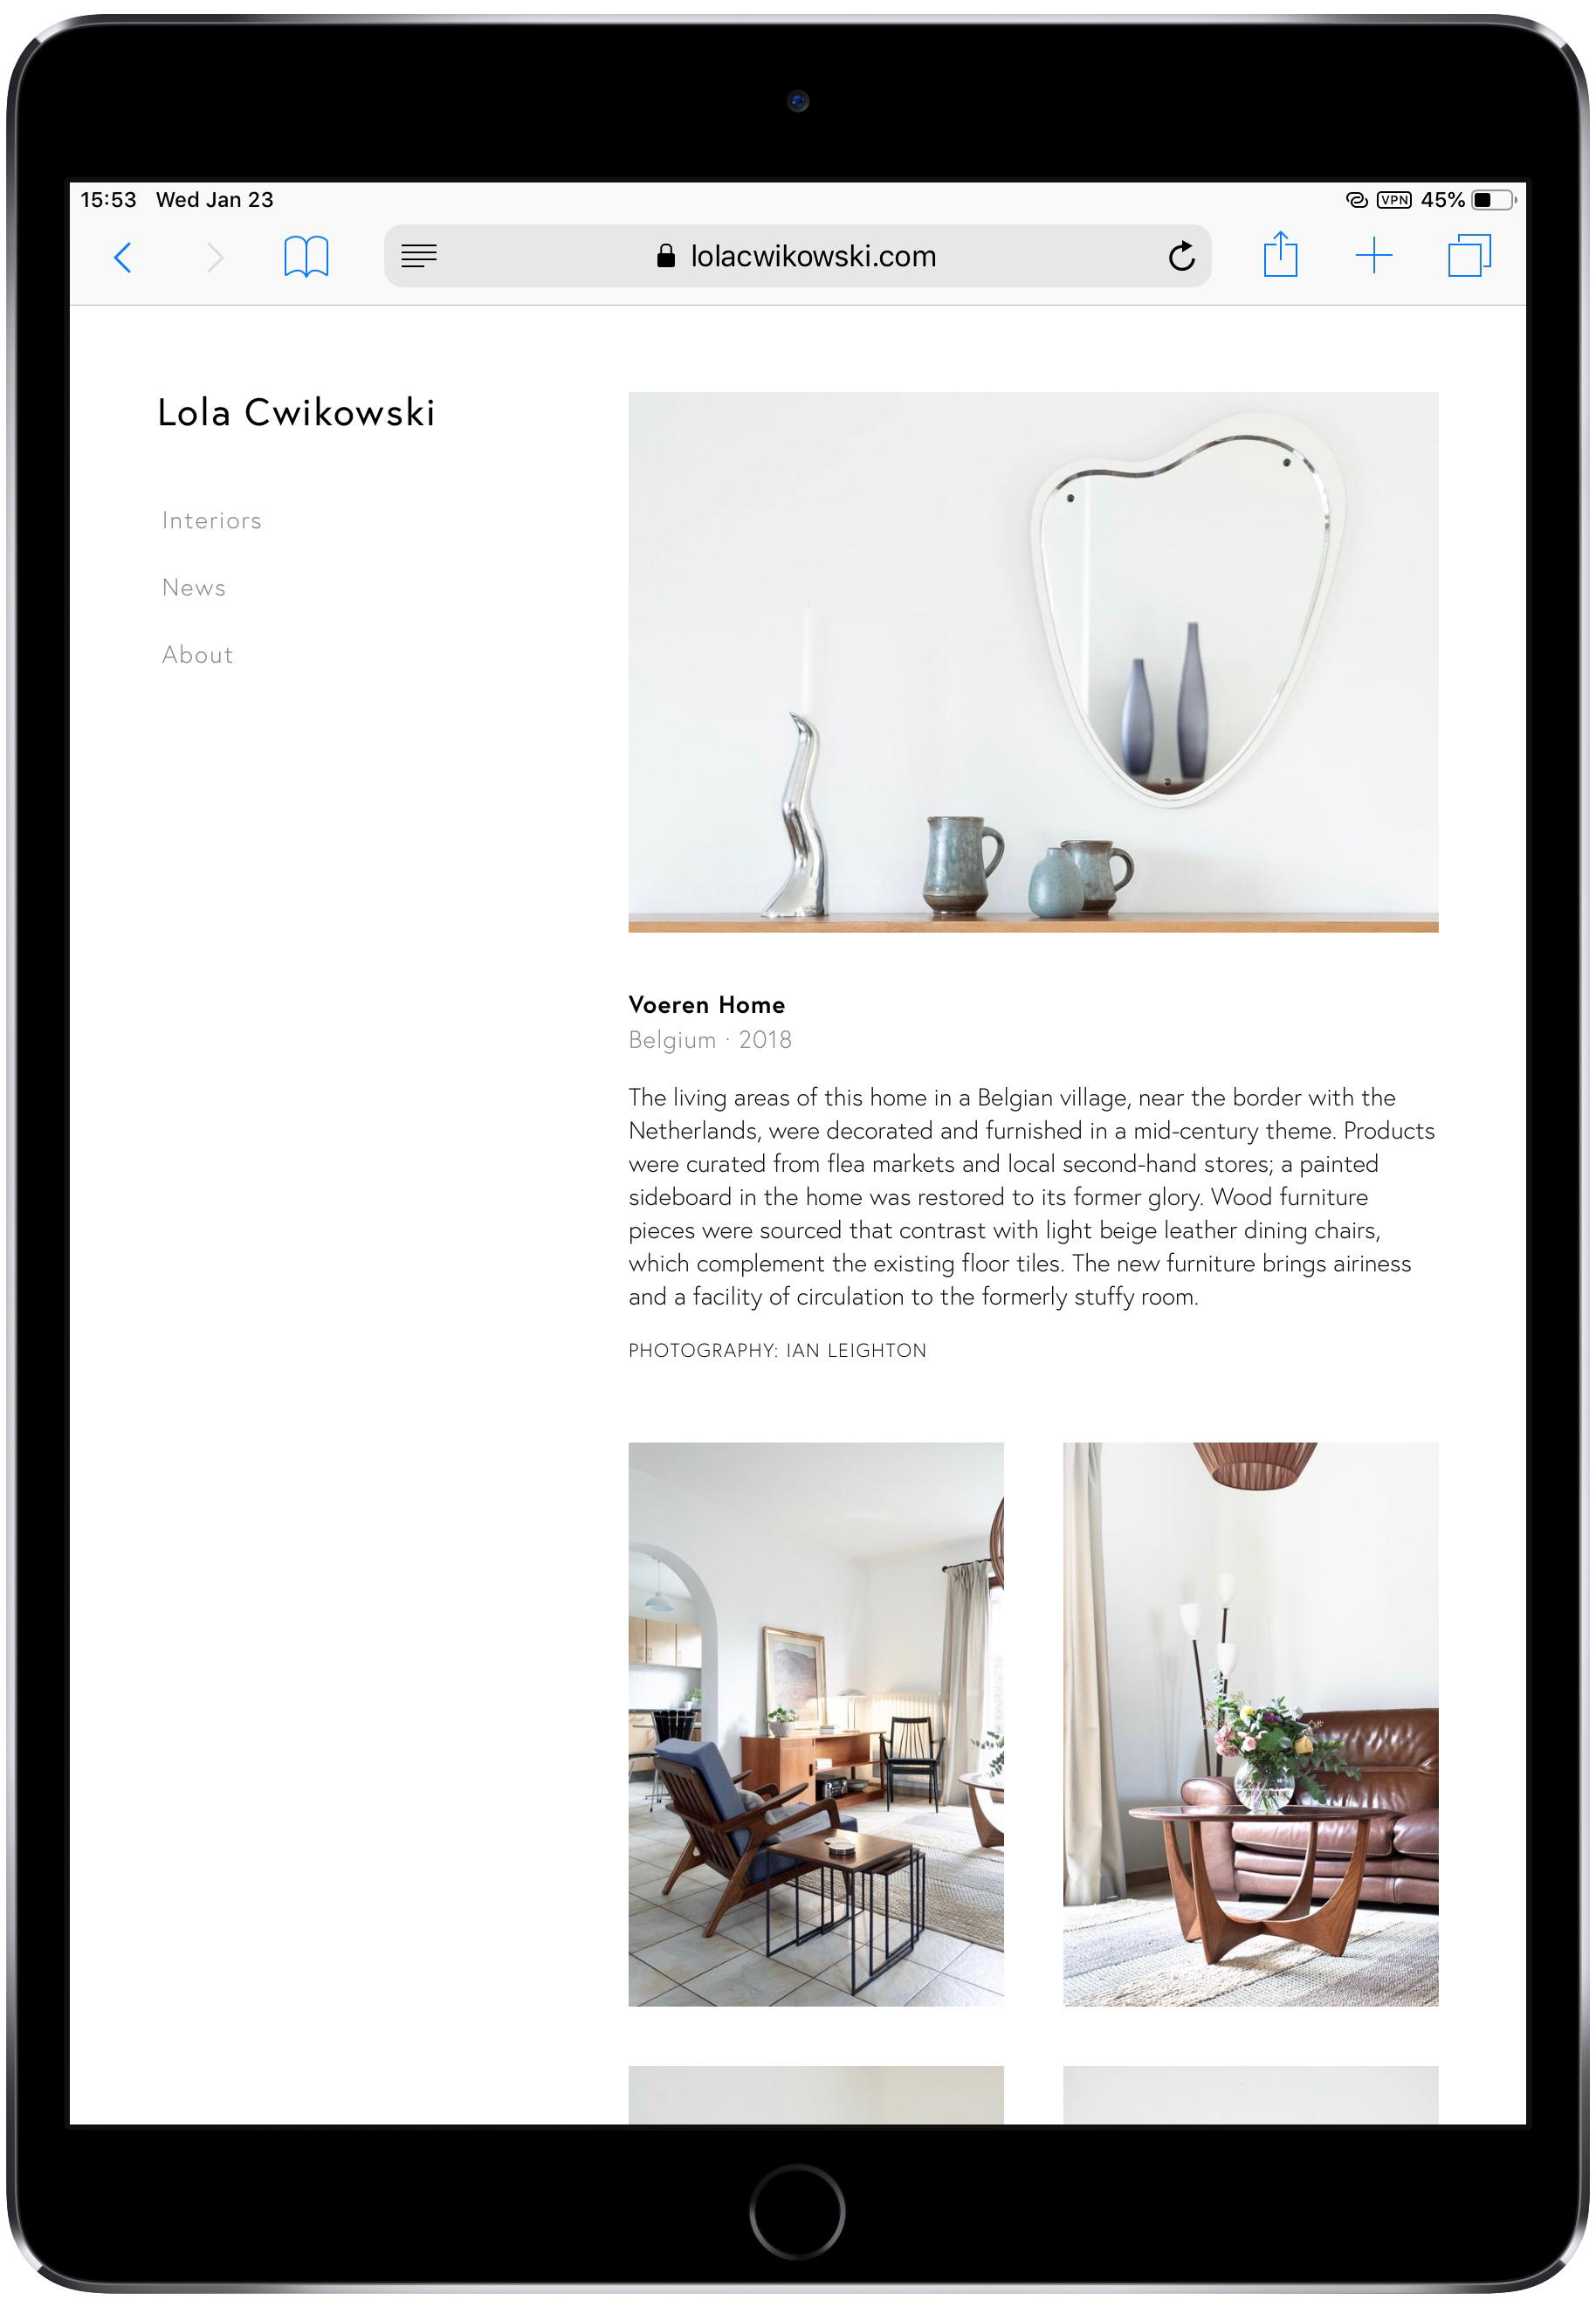 Screen capture of Lola Cwikowski Interior Design Studio website, Voeren Home project